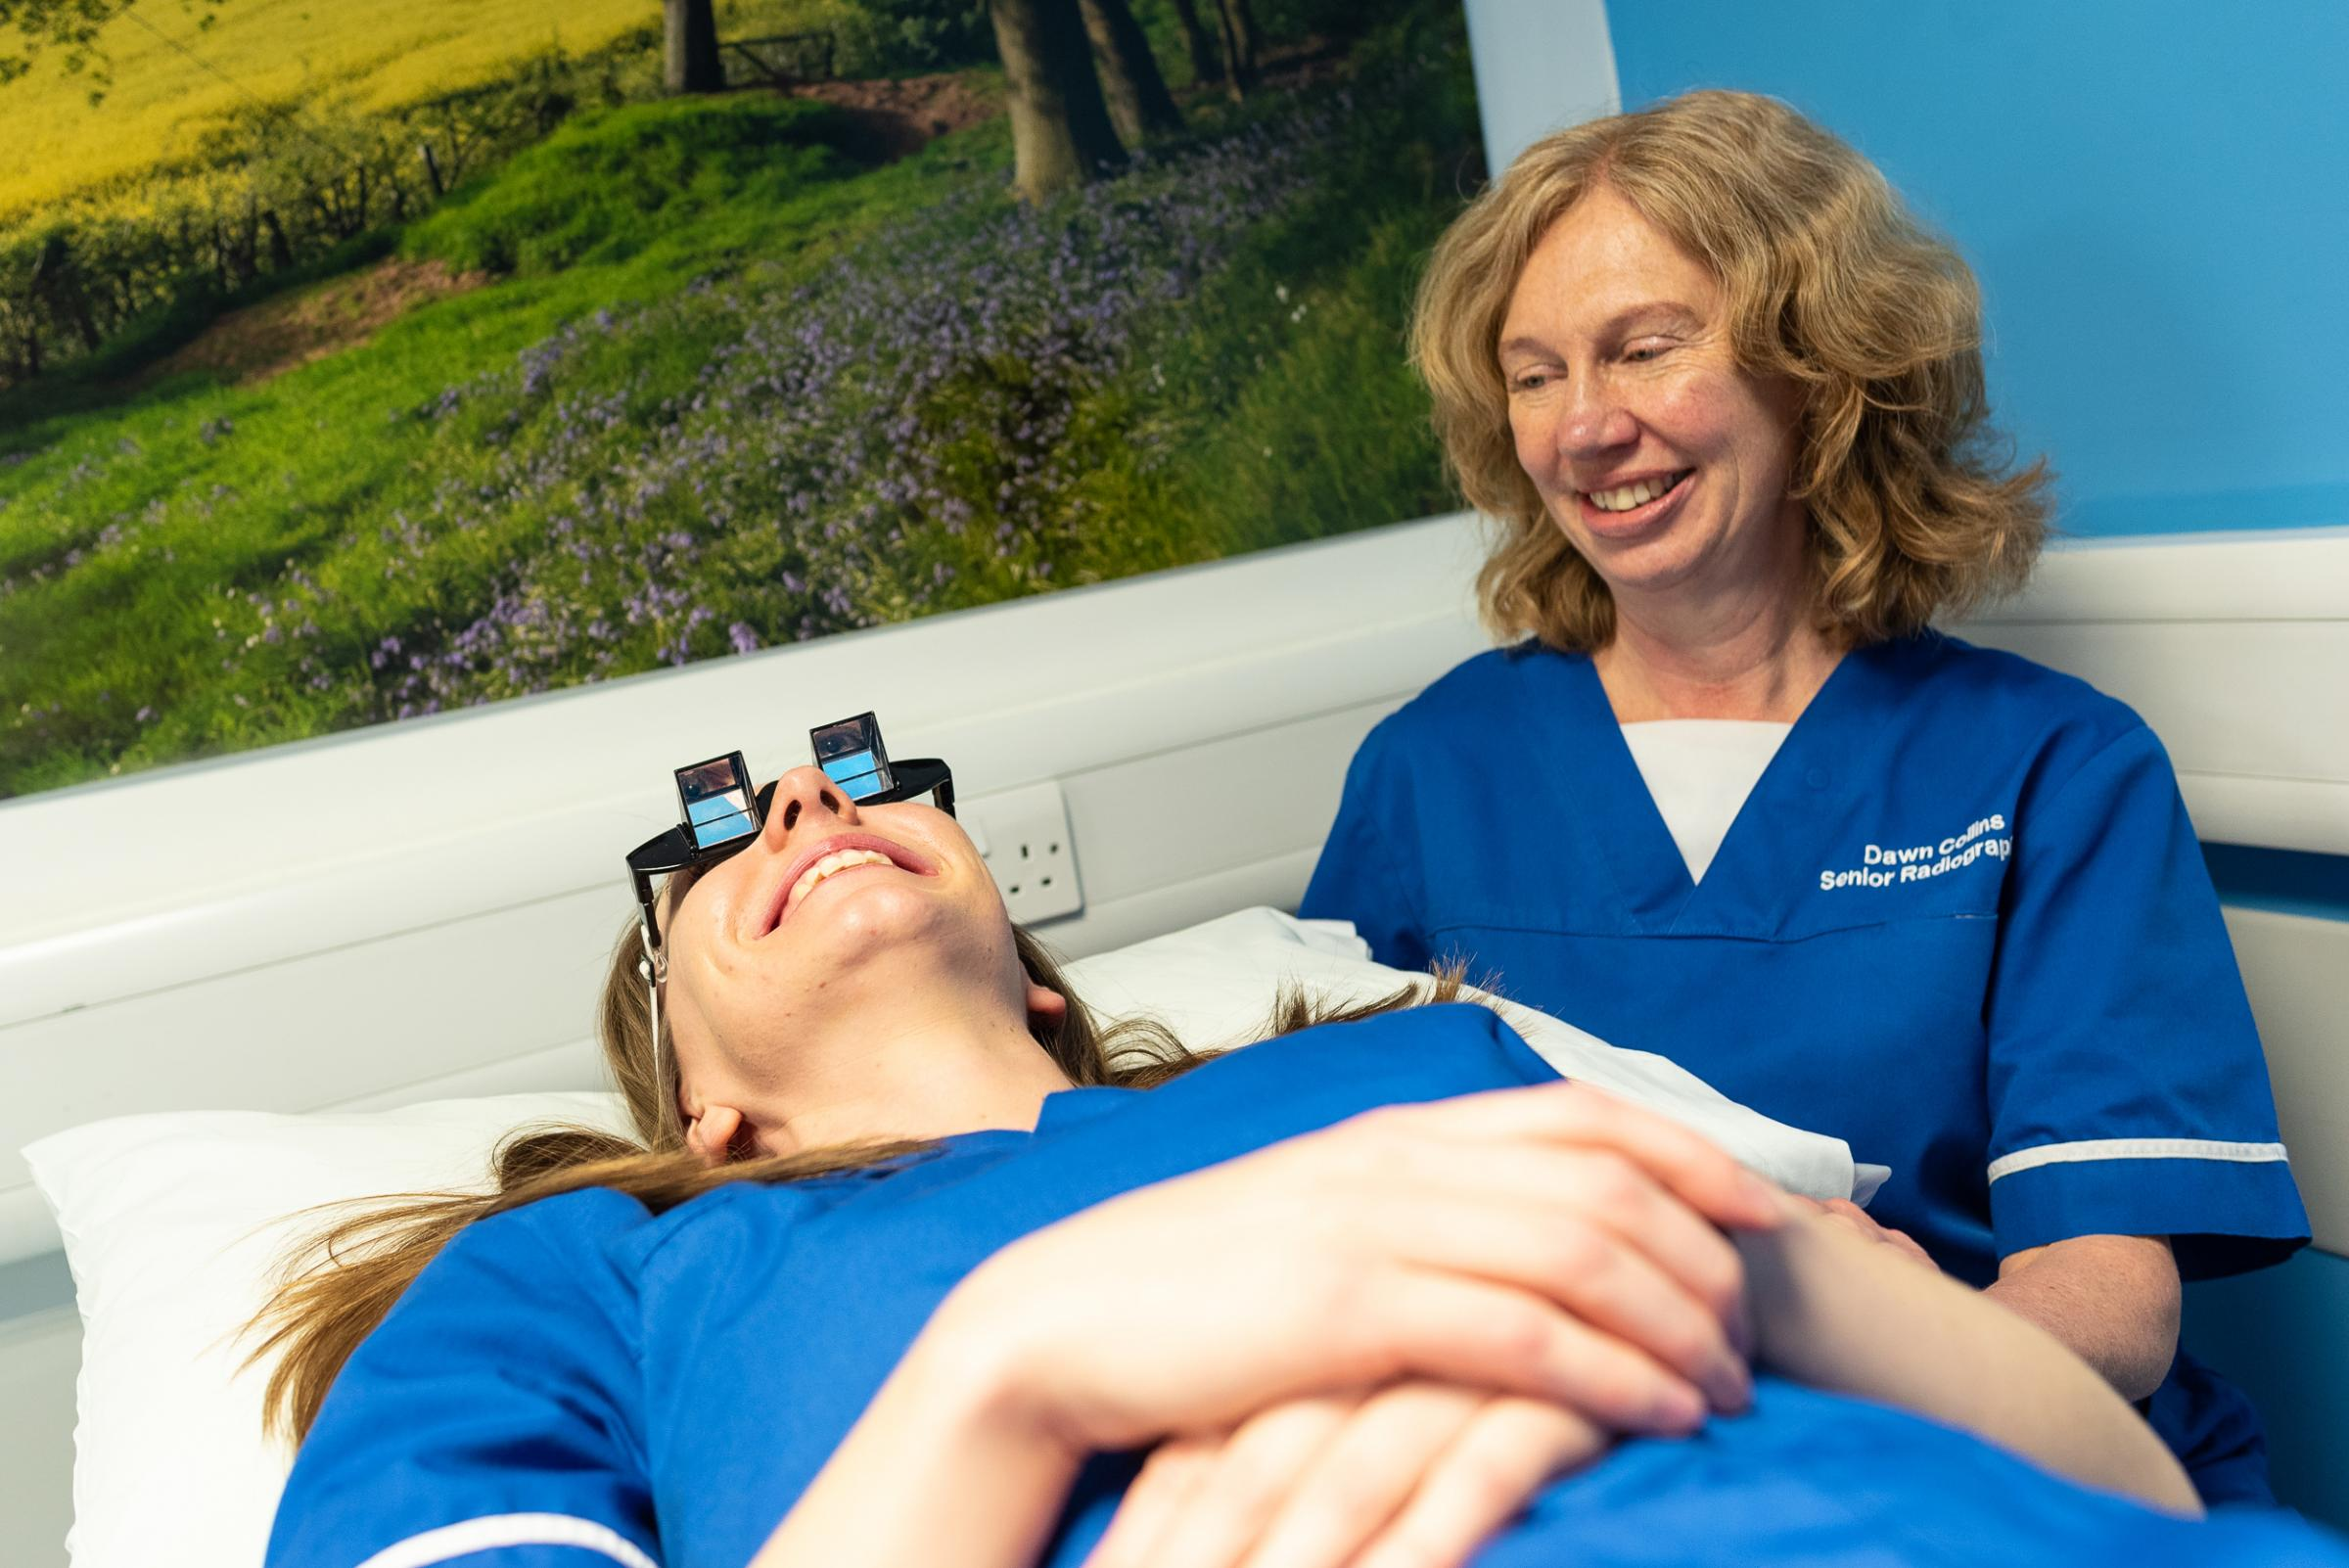 Senior radiographer Jodie Rogers wearing the prism glasses with lead MRI radiographer Dawn Collins.